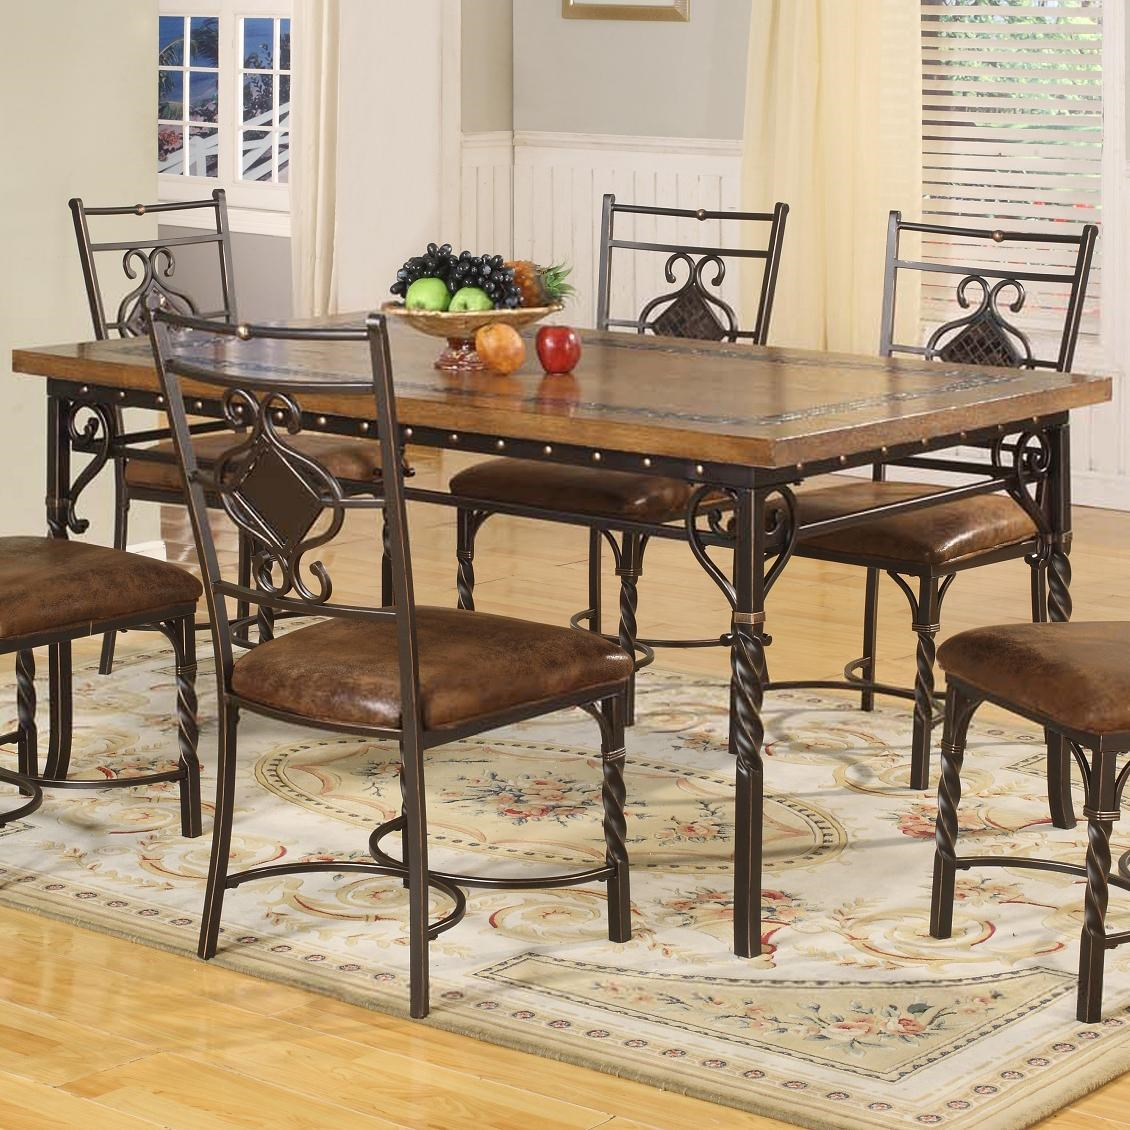 Lifestyle DC088 Rectangular Dining Table